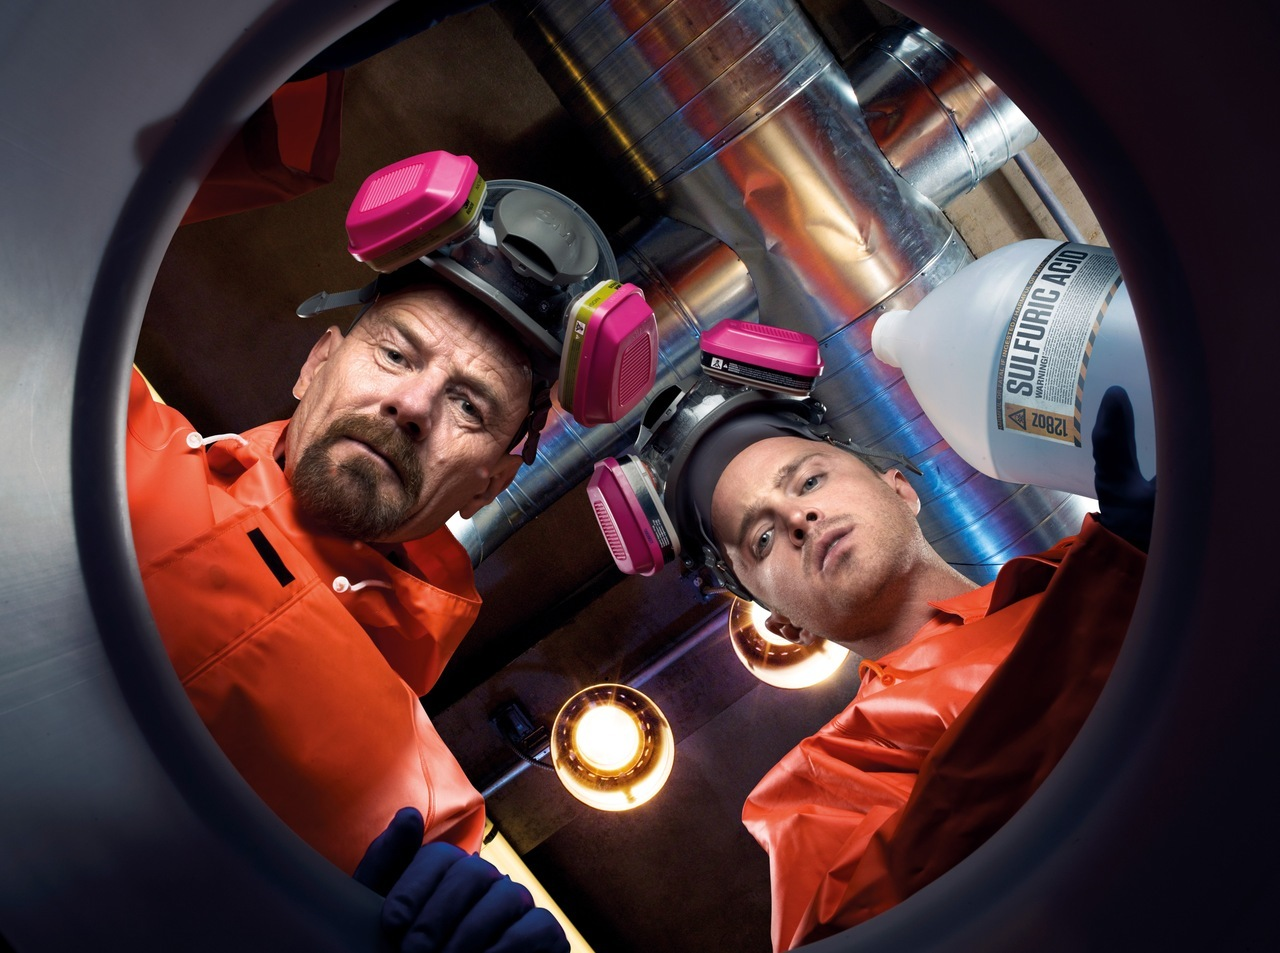 21570 download wallpaper Cinema, Breaking Bad screensavers and pictures for free